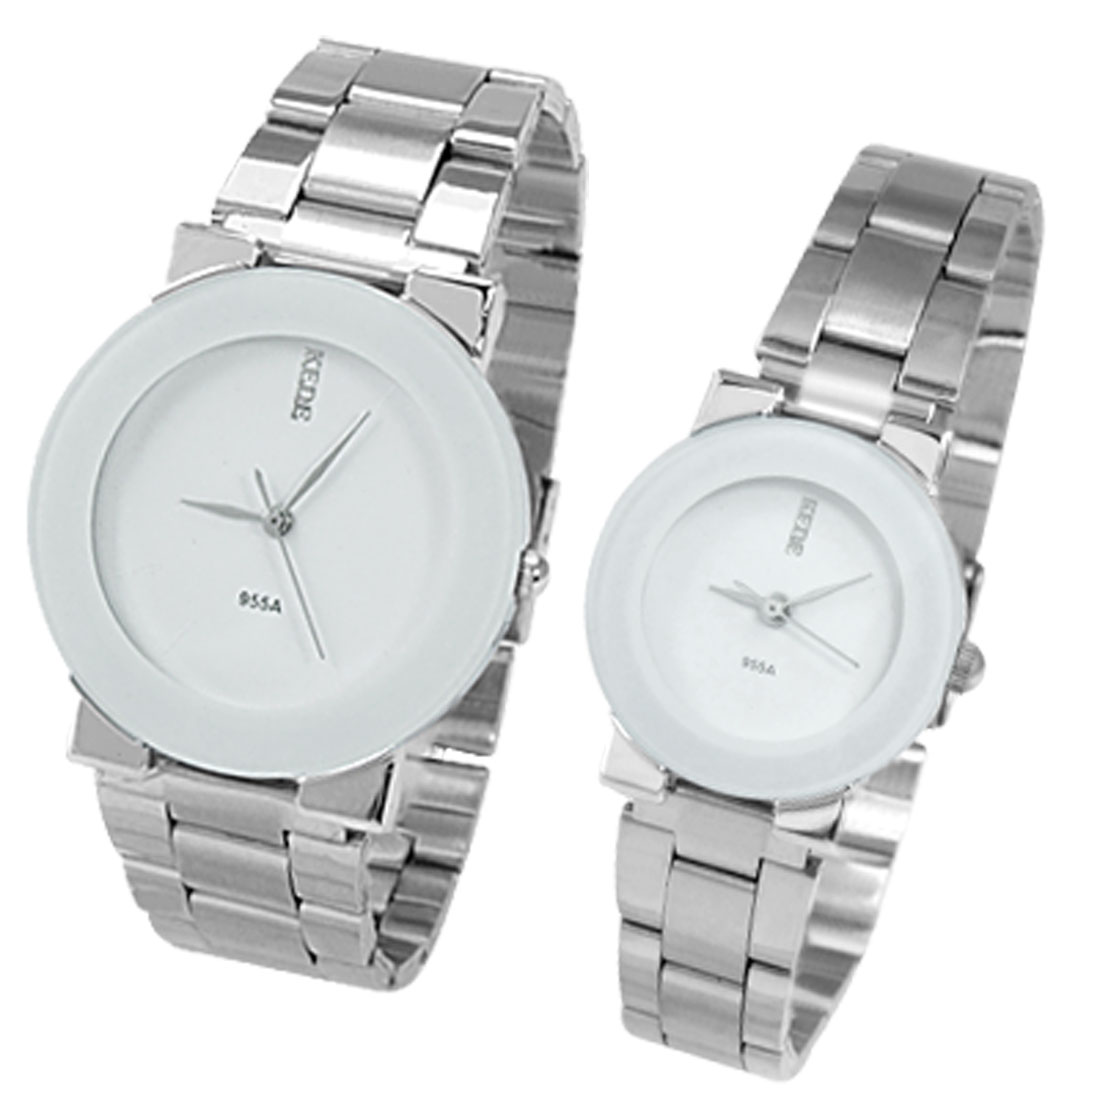 Pair Lovers White Rim Round Dial Case Steel Band Wristwatch Watch